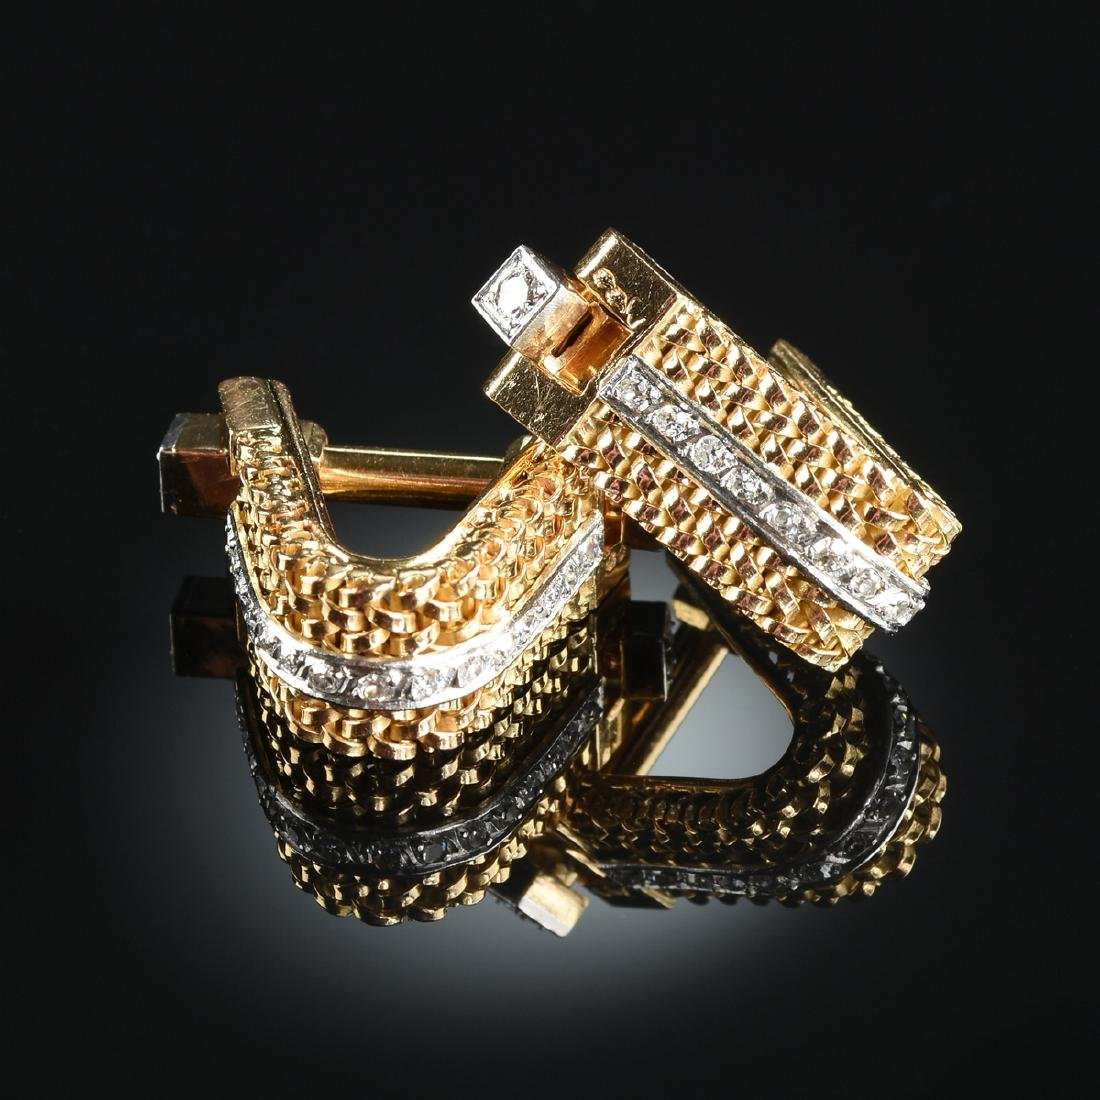 A PAIR OF FRENCH 18K YELLOW GOLD HALLMARKED AND DIAMOND